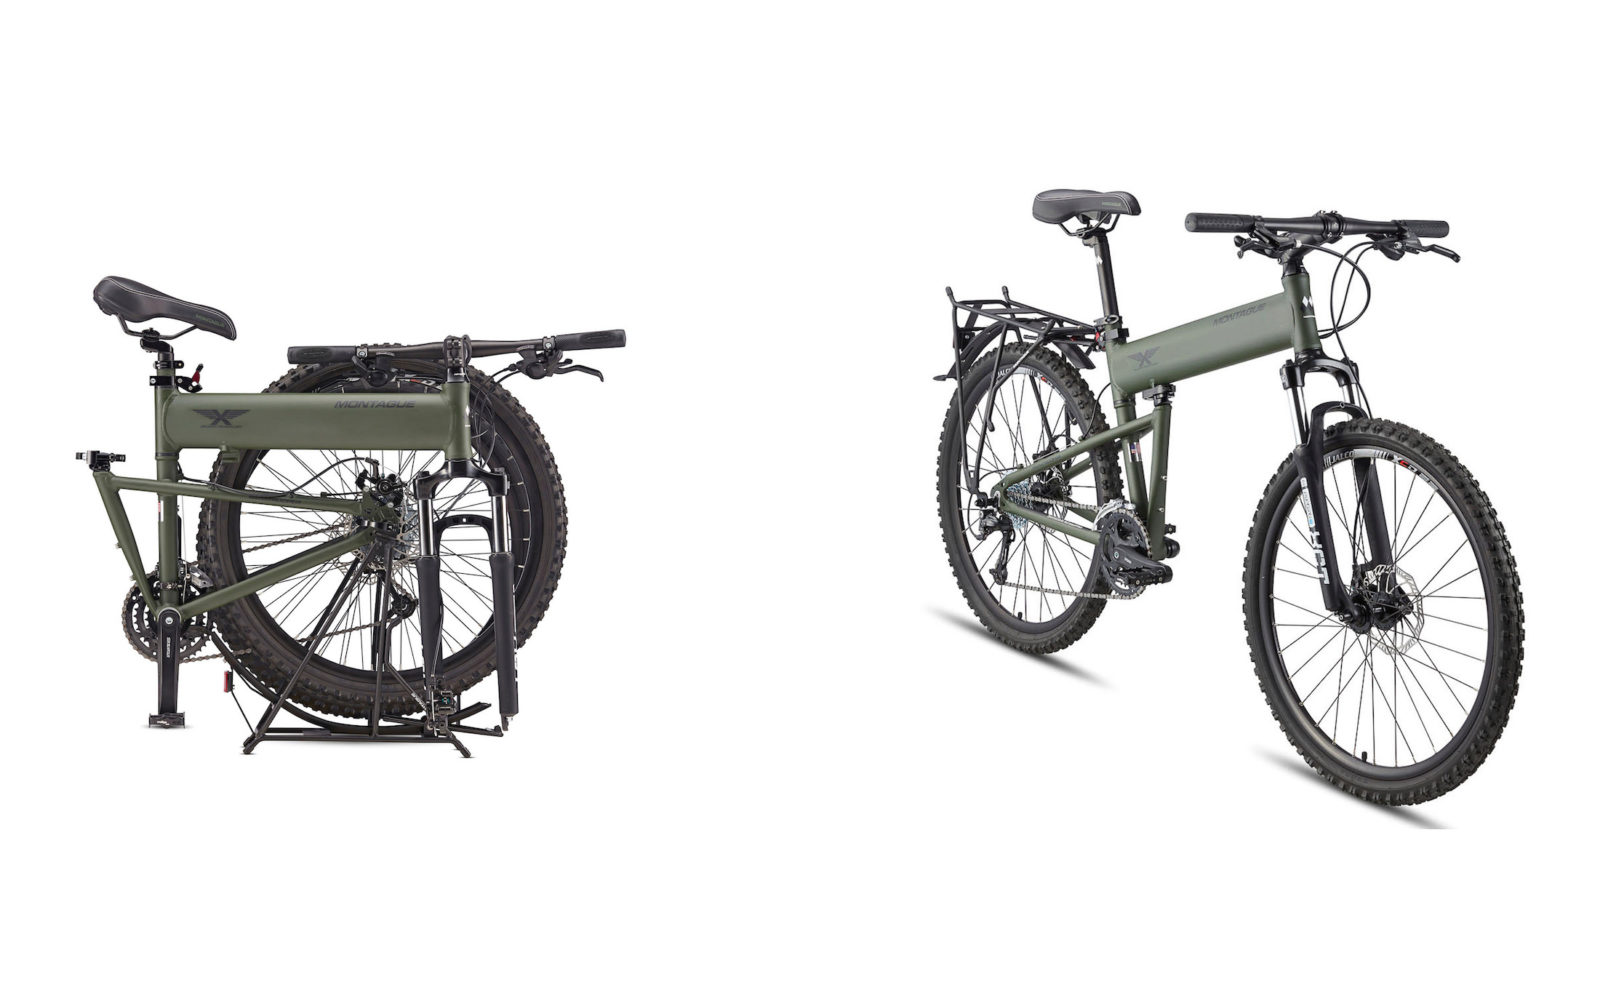 The Montague Paratrooper Bike - Developed For US Special Forces With A Grant From DARPA